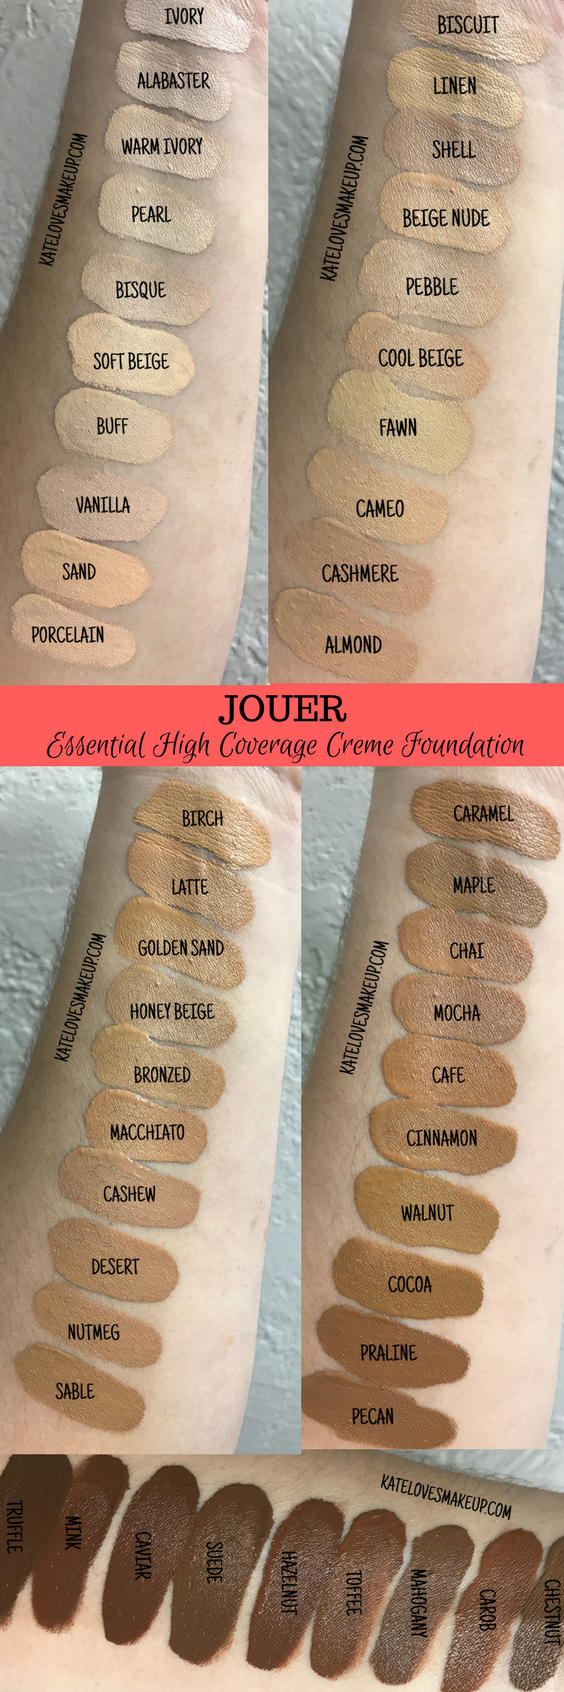 Swatches of all shades the jouer essential high coverage creme foundation from beauty blogger kate loves makeup click through to see also rh pinterest